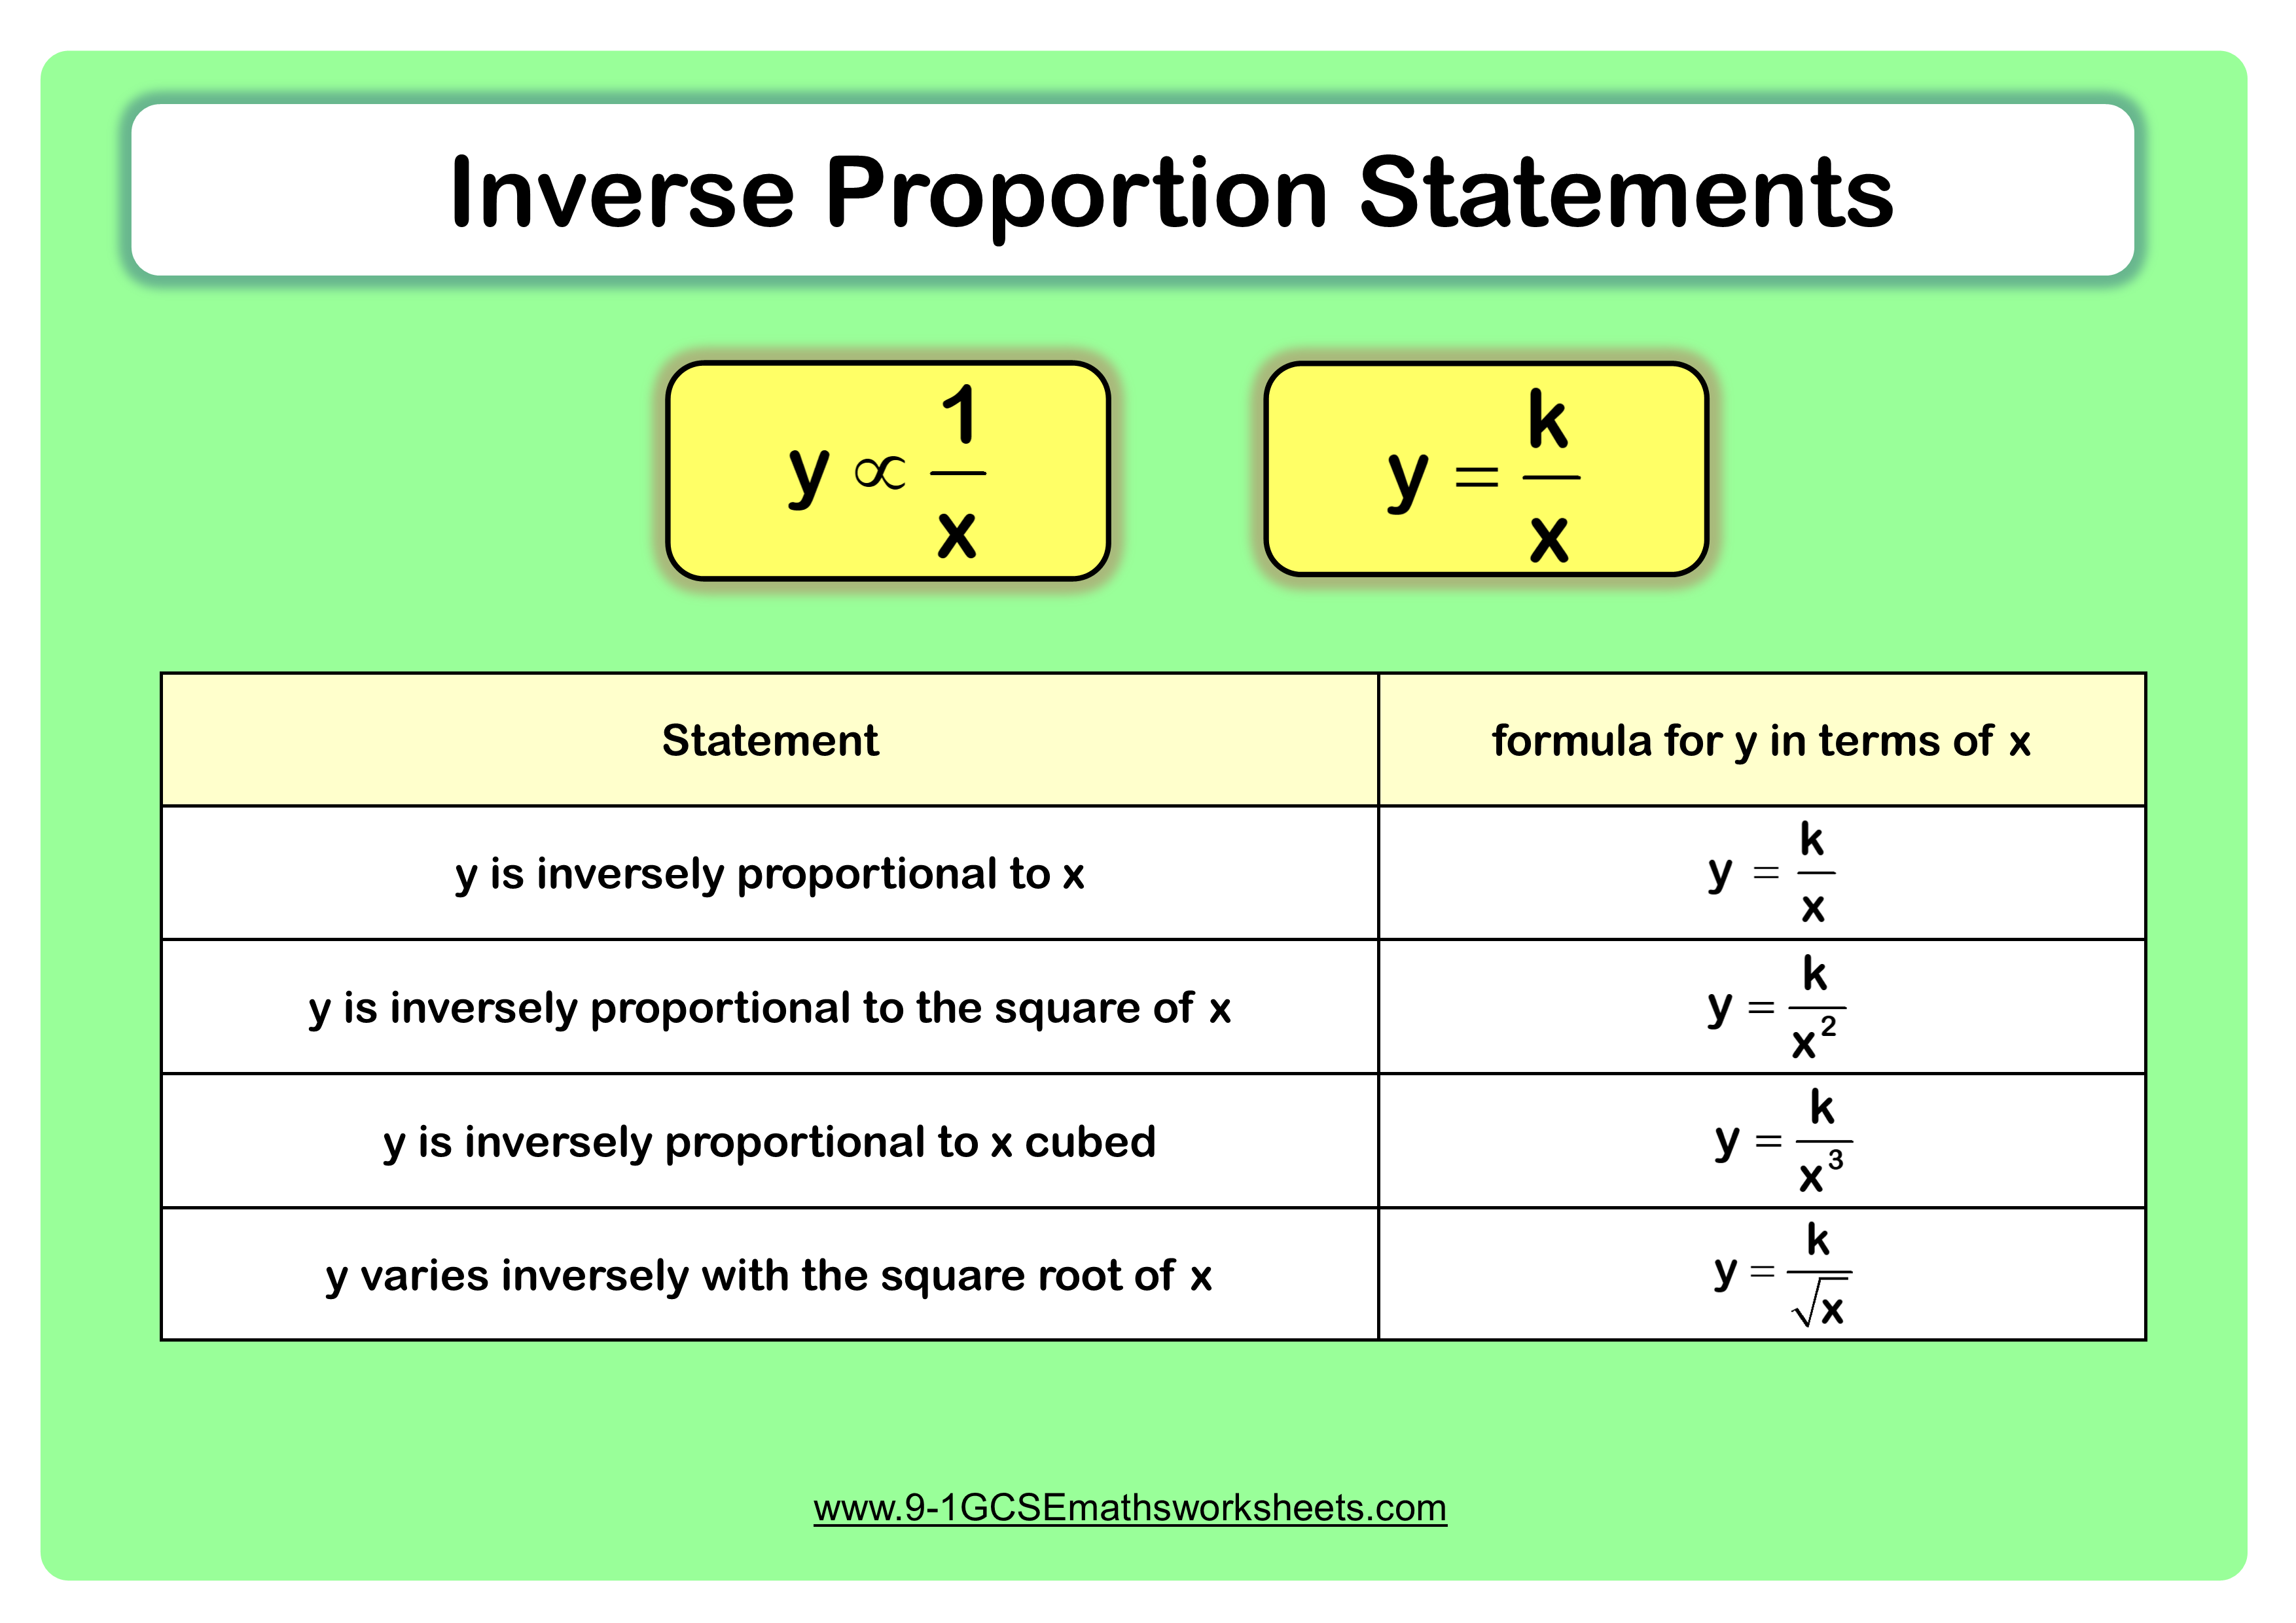 Inverse Proportion Statements